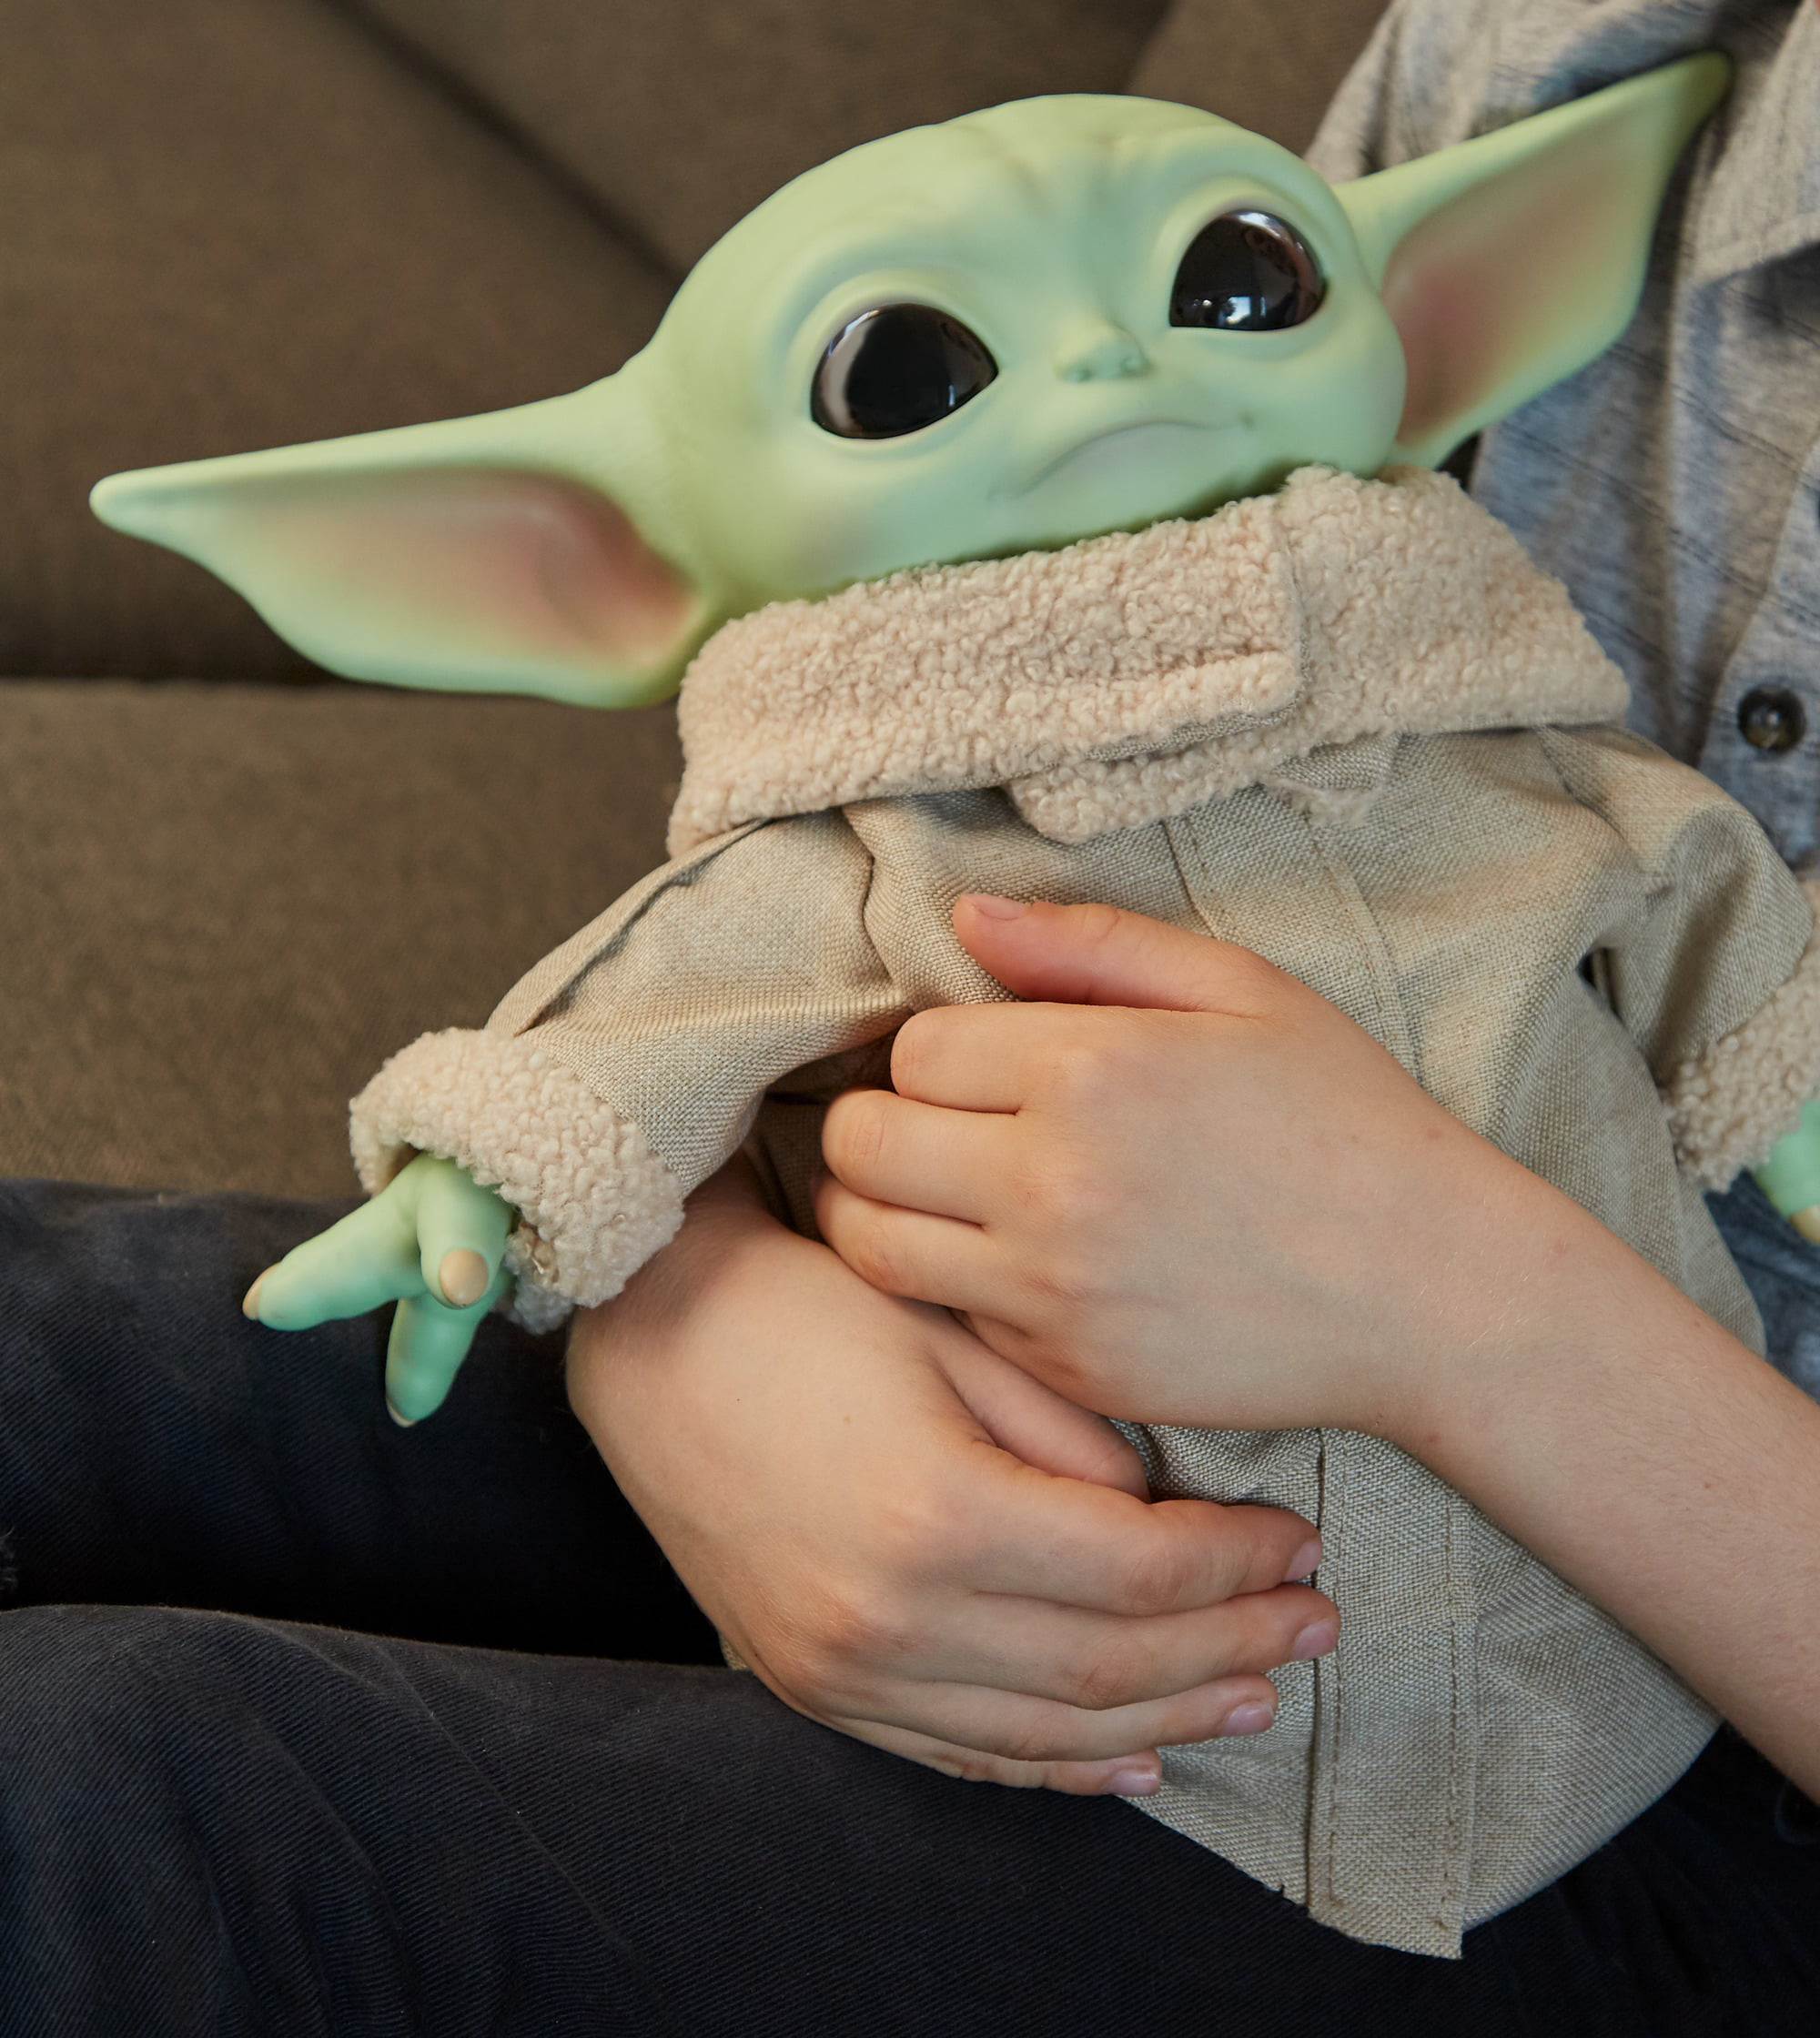 Star Wars The Child Plush Toy 11 Inch Small Baby Yoda Like Soft Figure From The Mandalorian Walmart Com Walmart Com